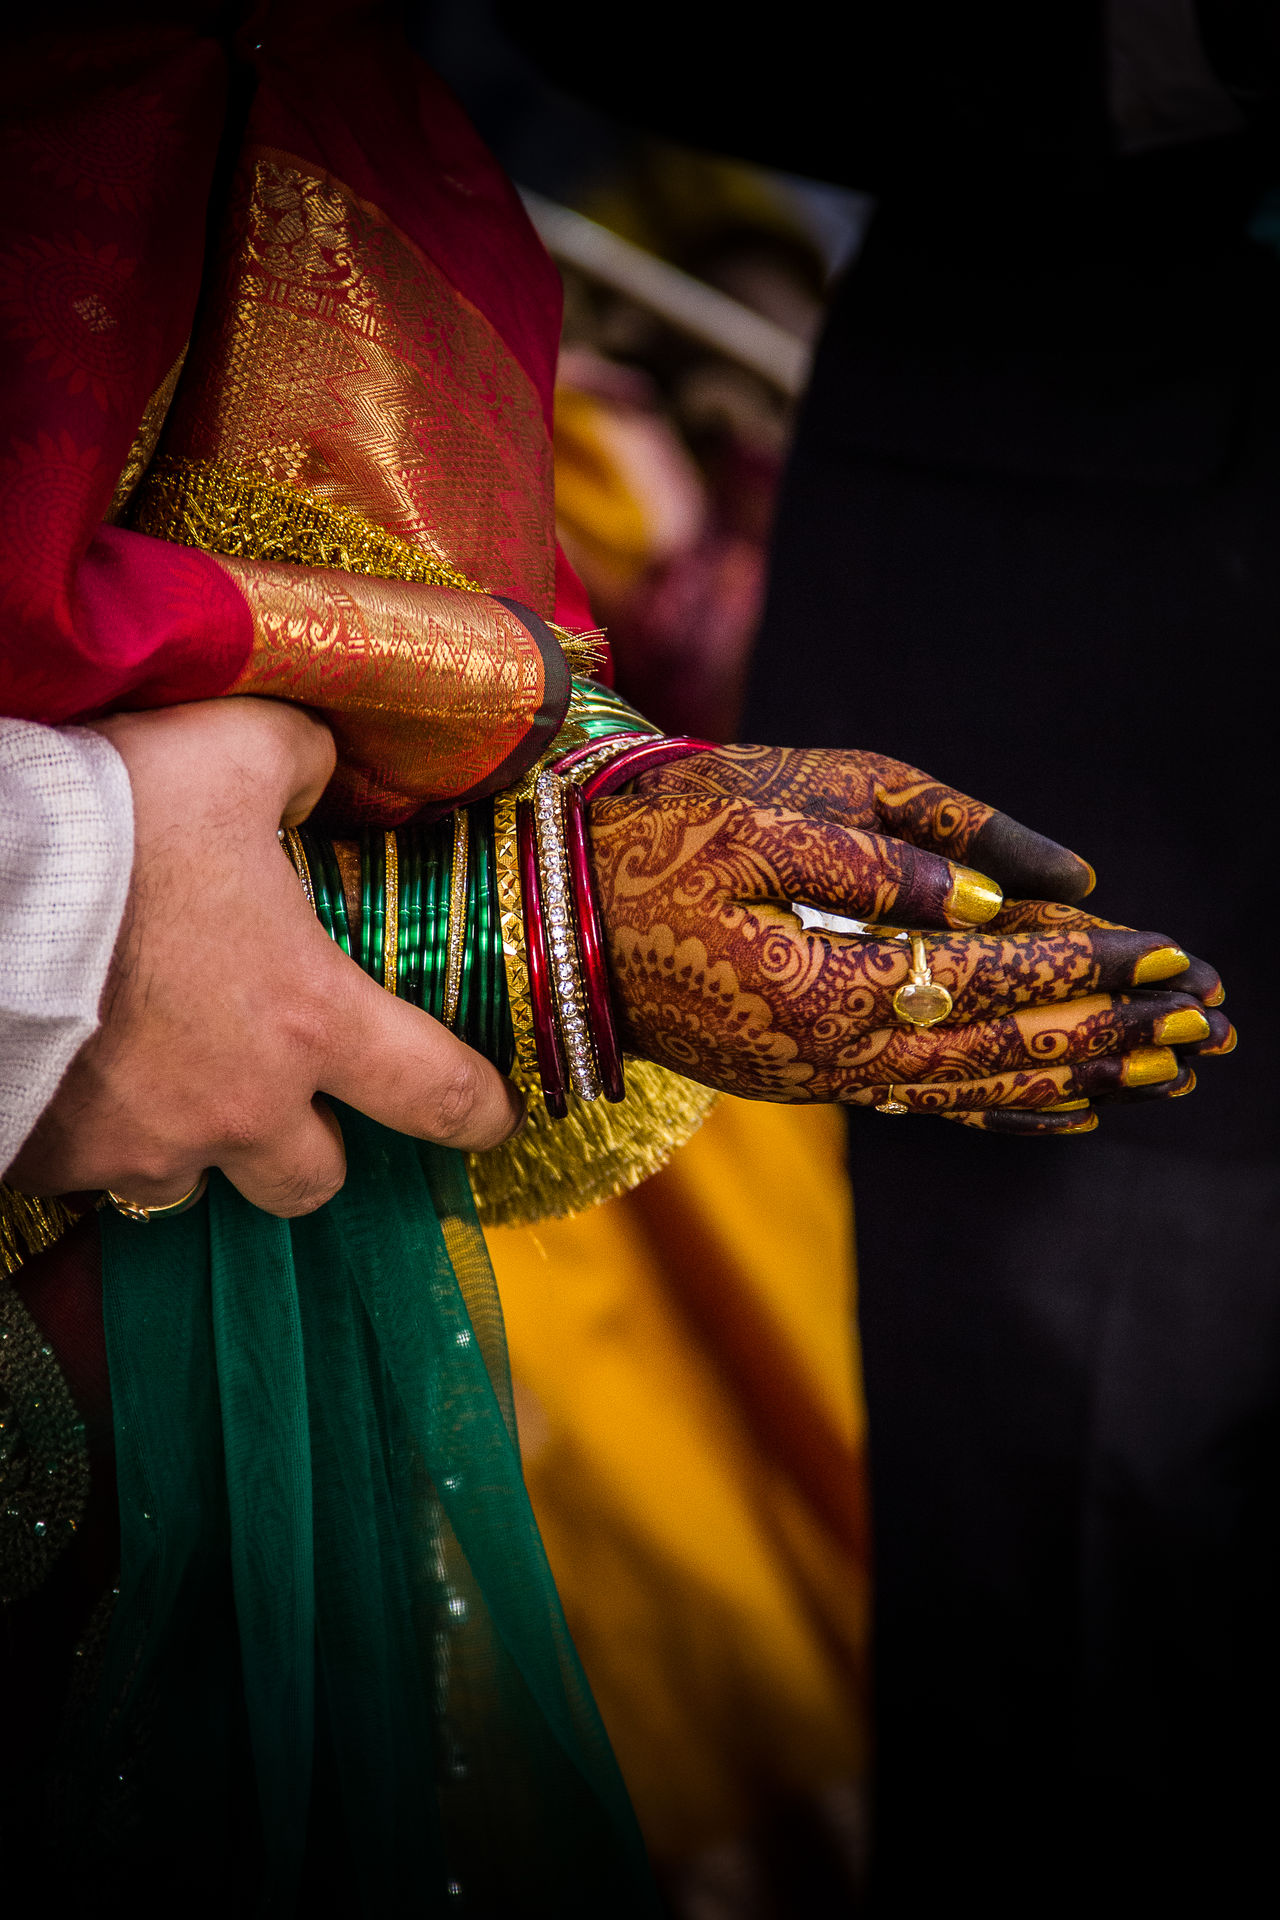 Indian Wedding Rituals Candid Celebration Ceremony Close-up Colorful Colors Hand Happiness Happy Holding India Indian Indian Wedding Joy Joyful Joyful Moments Love Ring Together Wedding Wedding Day Wedding Photography